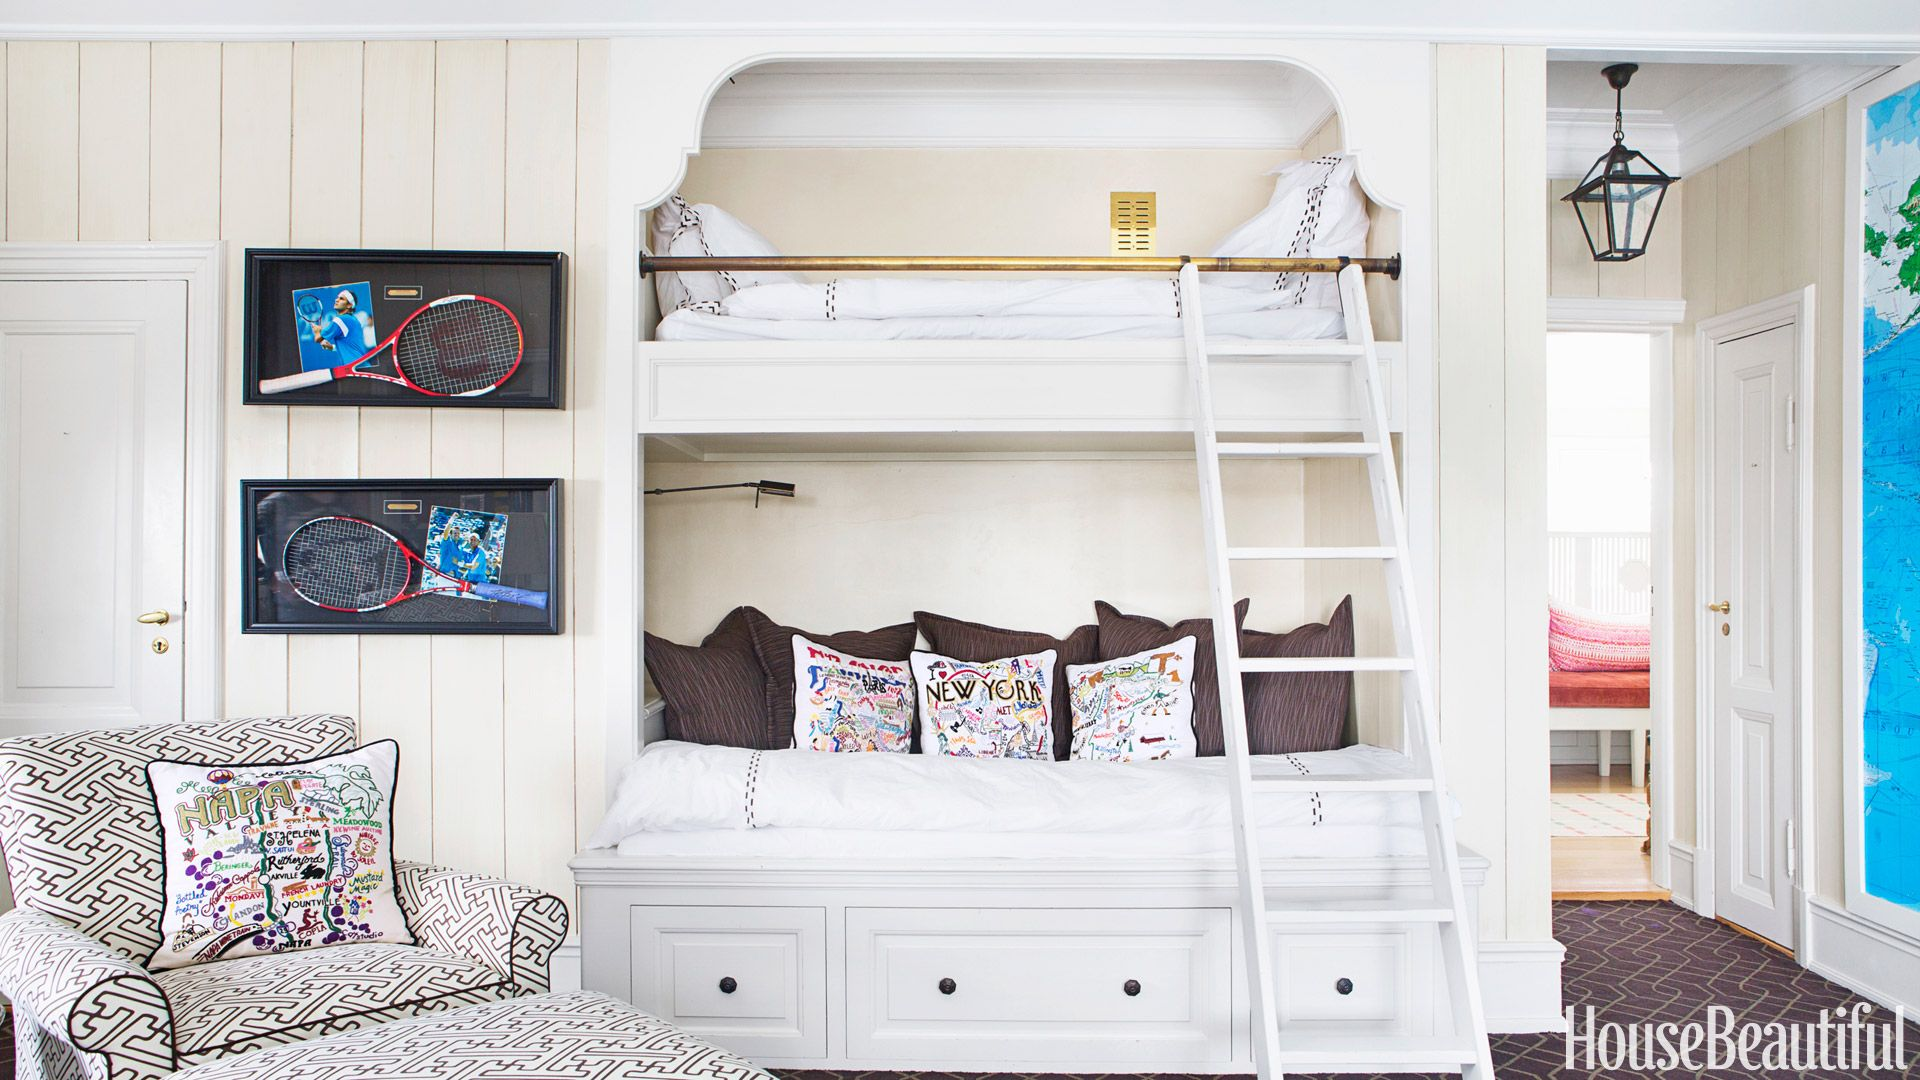 16 Cool Bunk Beds Bunk Bed Designs Stylish Bunk Room Ideas For Guests And Kids